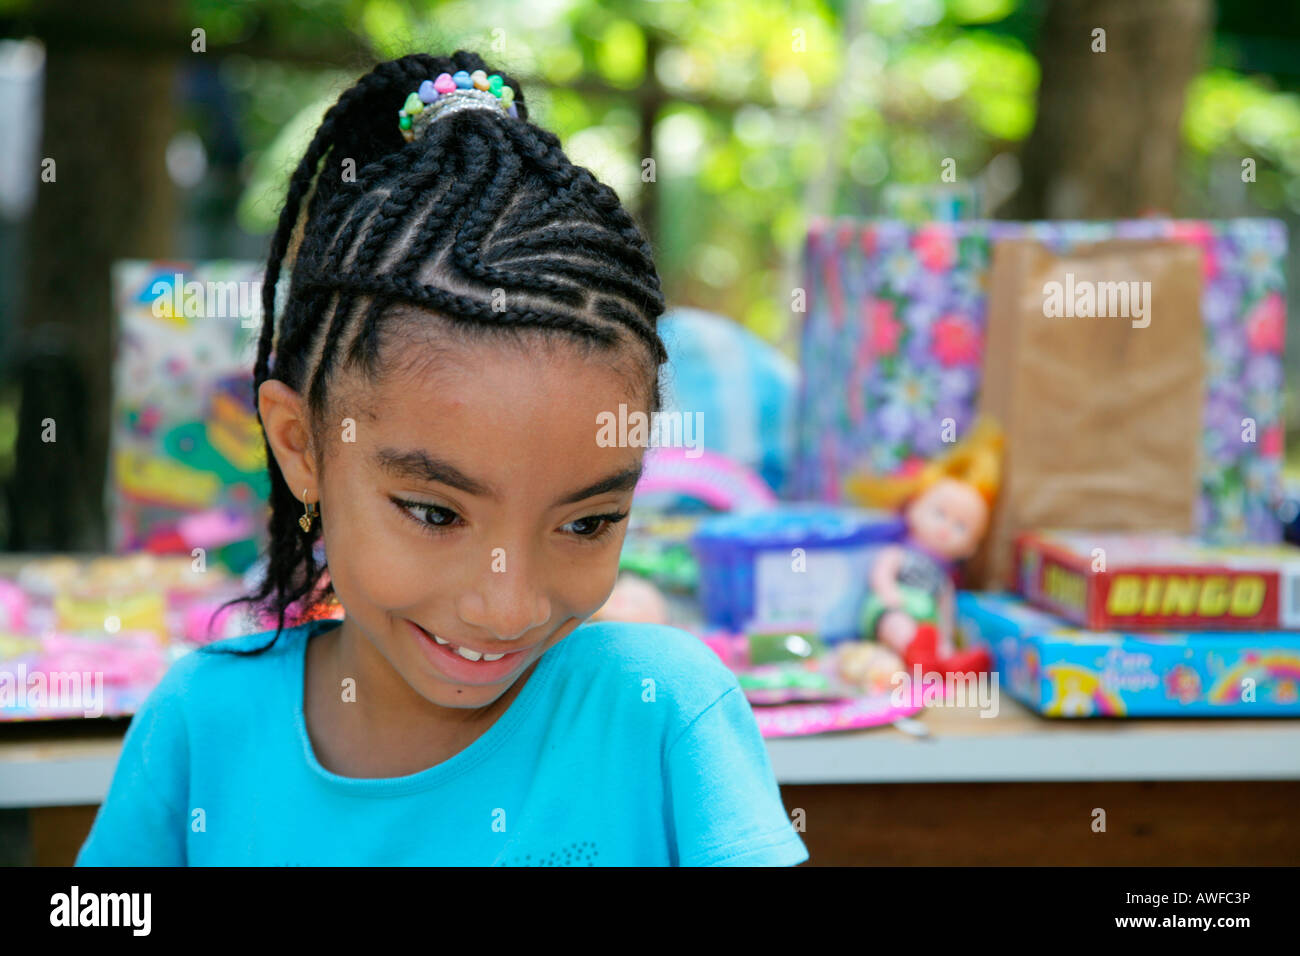 Young Girl With Braids In Her Hair Georgetown Guyana